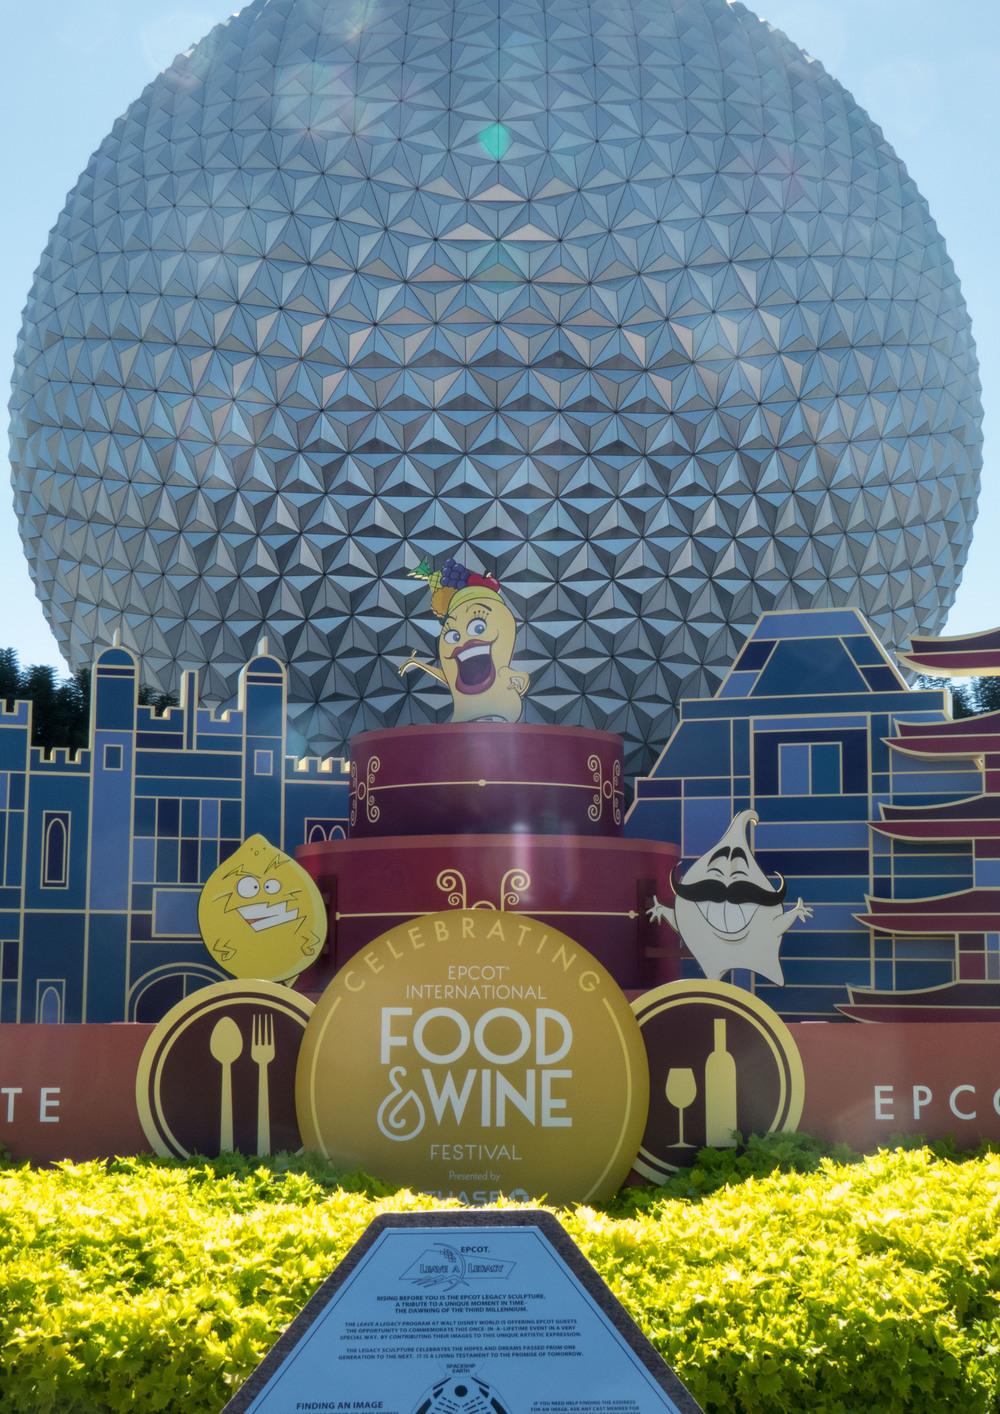 2015_EPCOT_Intl_Food_and_Wine_Festival_Sign_(1_of_1).jpg